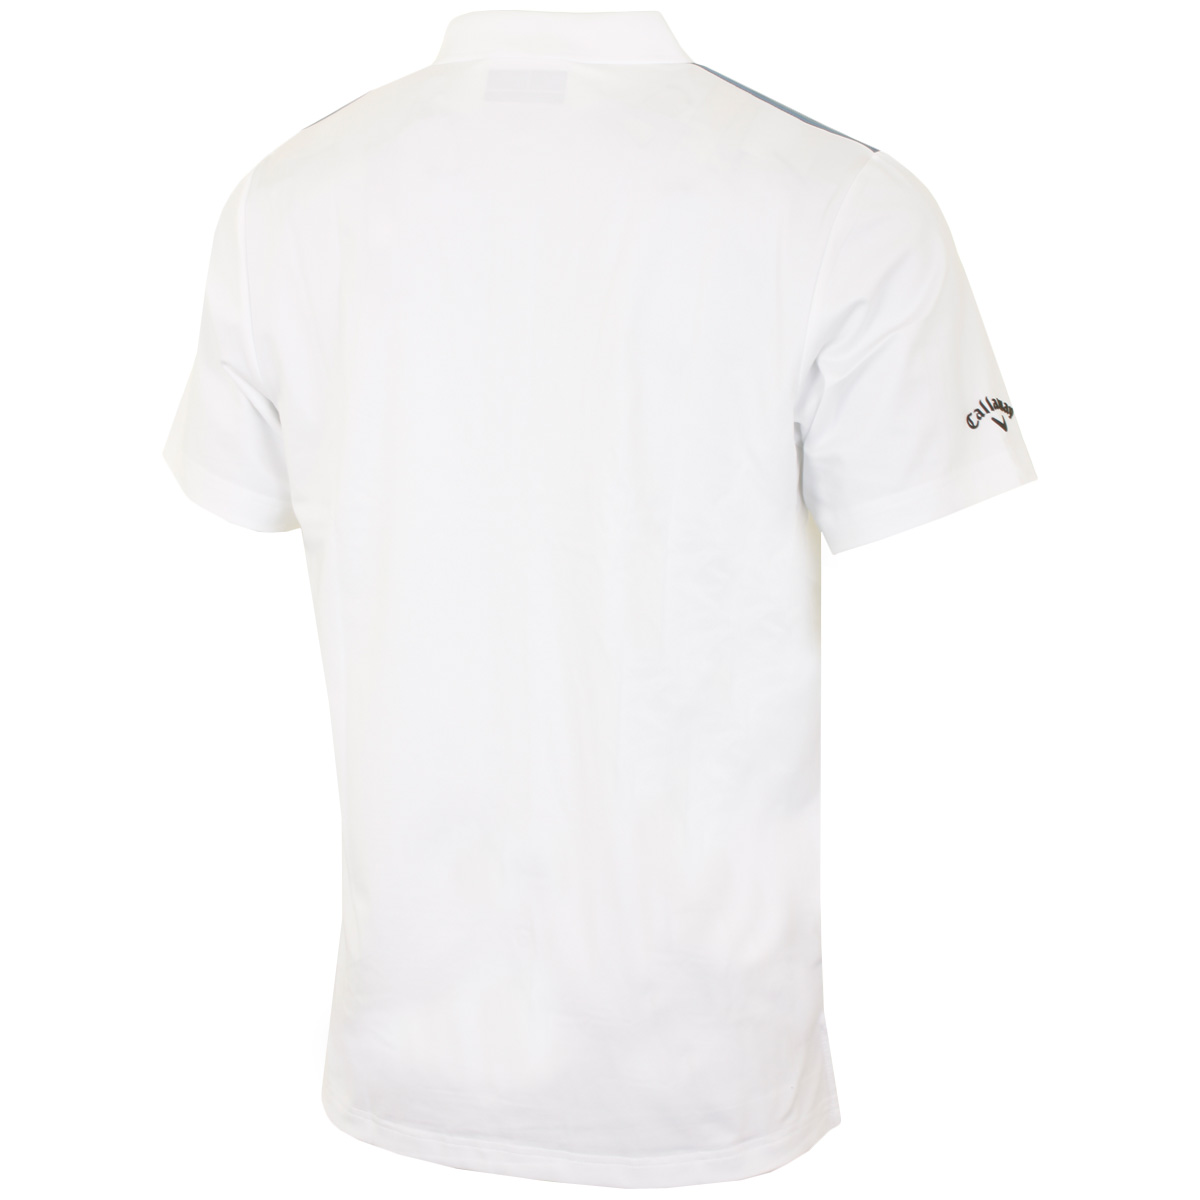 Callaway-Golf-Mens-Engineered-Roadmap-Striped-Polo-Opti-Dri-Shirt-51-OFF-RRP thumbnail 3